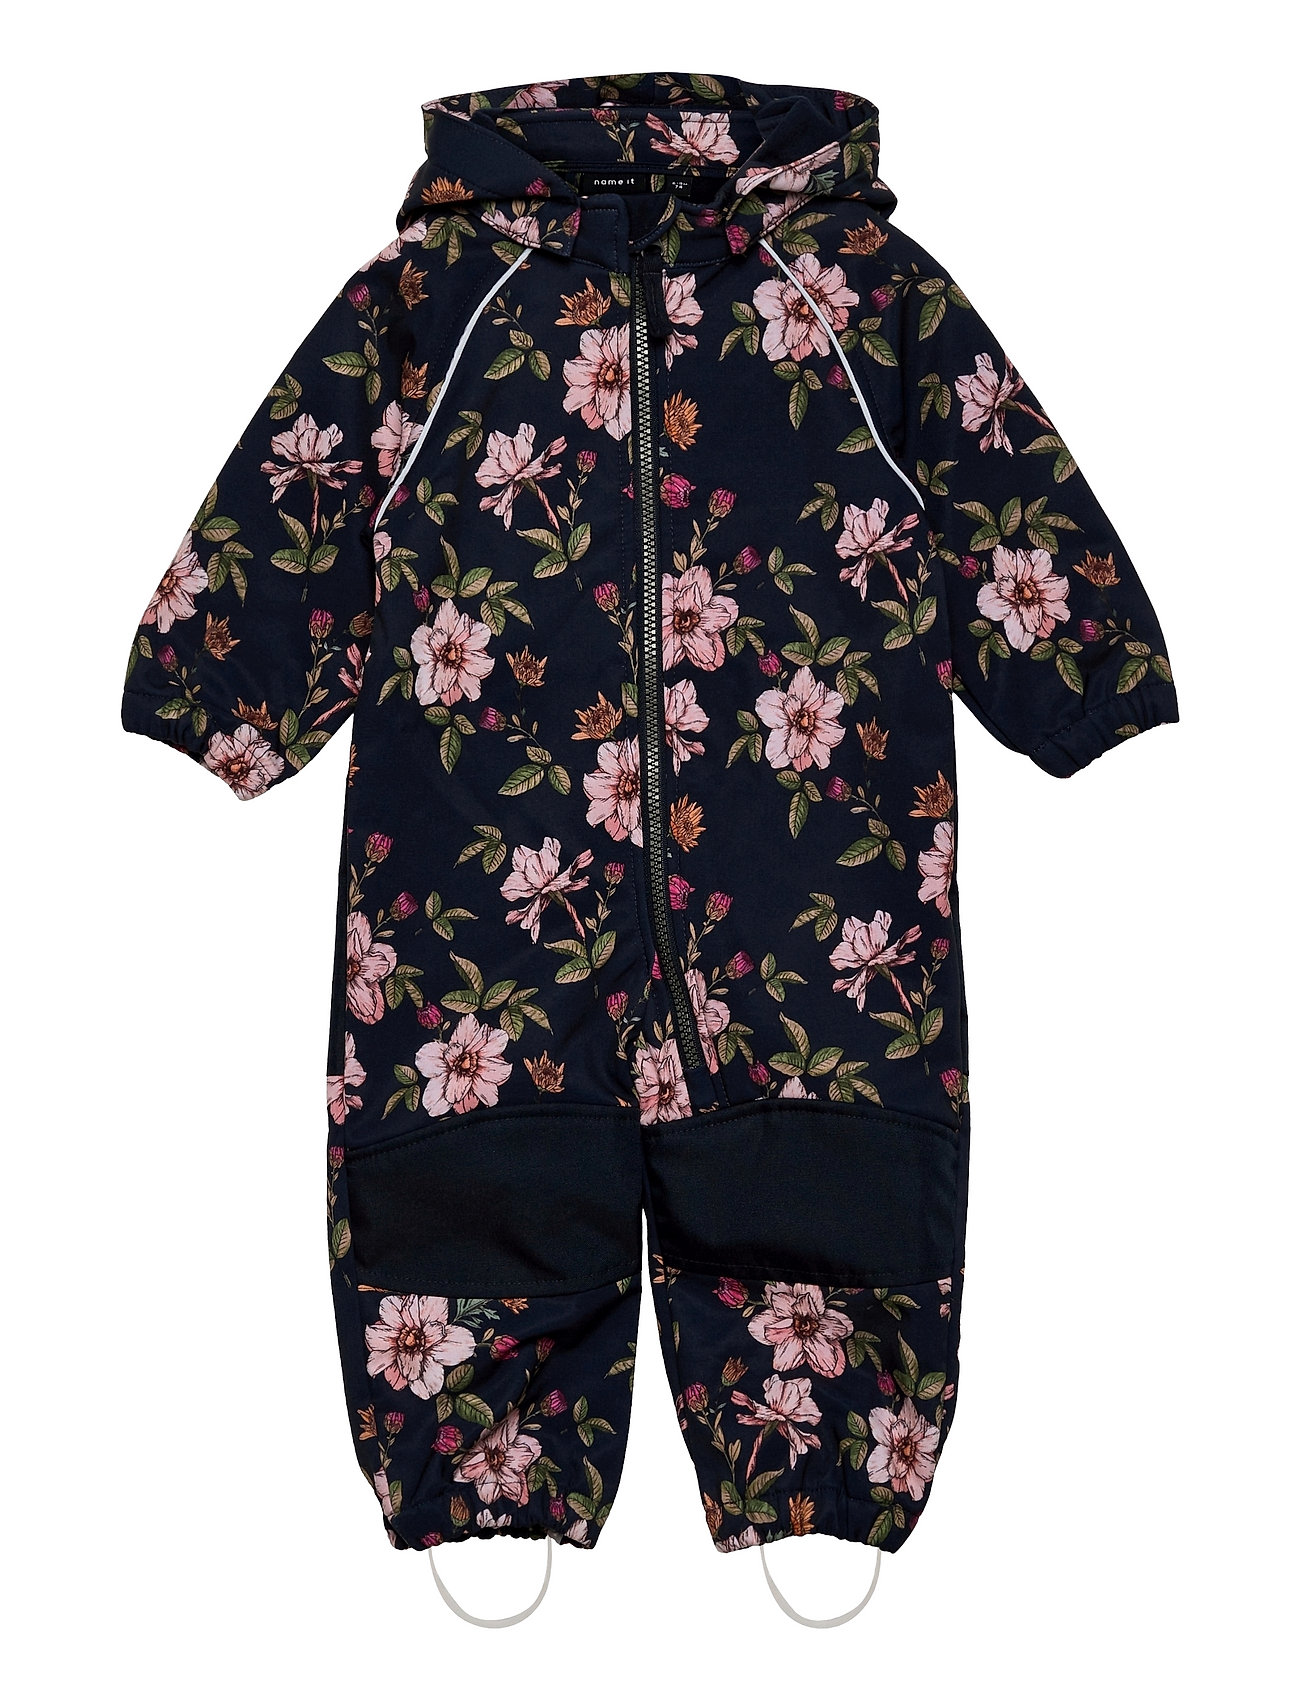 Nmfalfa Suit Floral 1fo Outerwear Softshells Softshell Sets & Suits Blå Name It